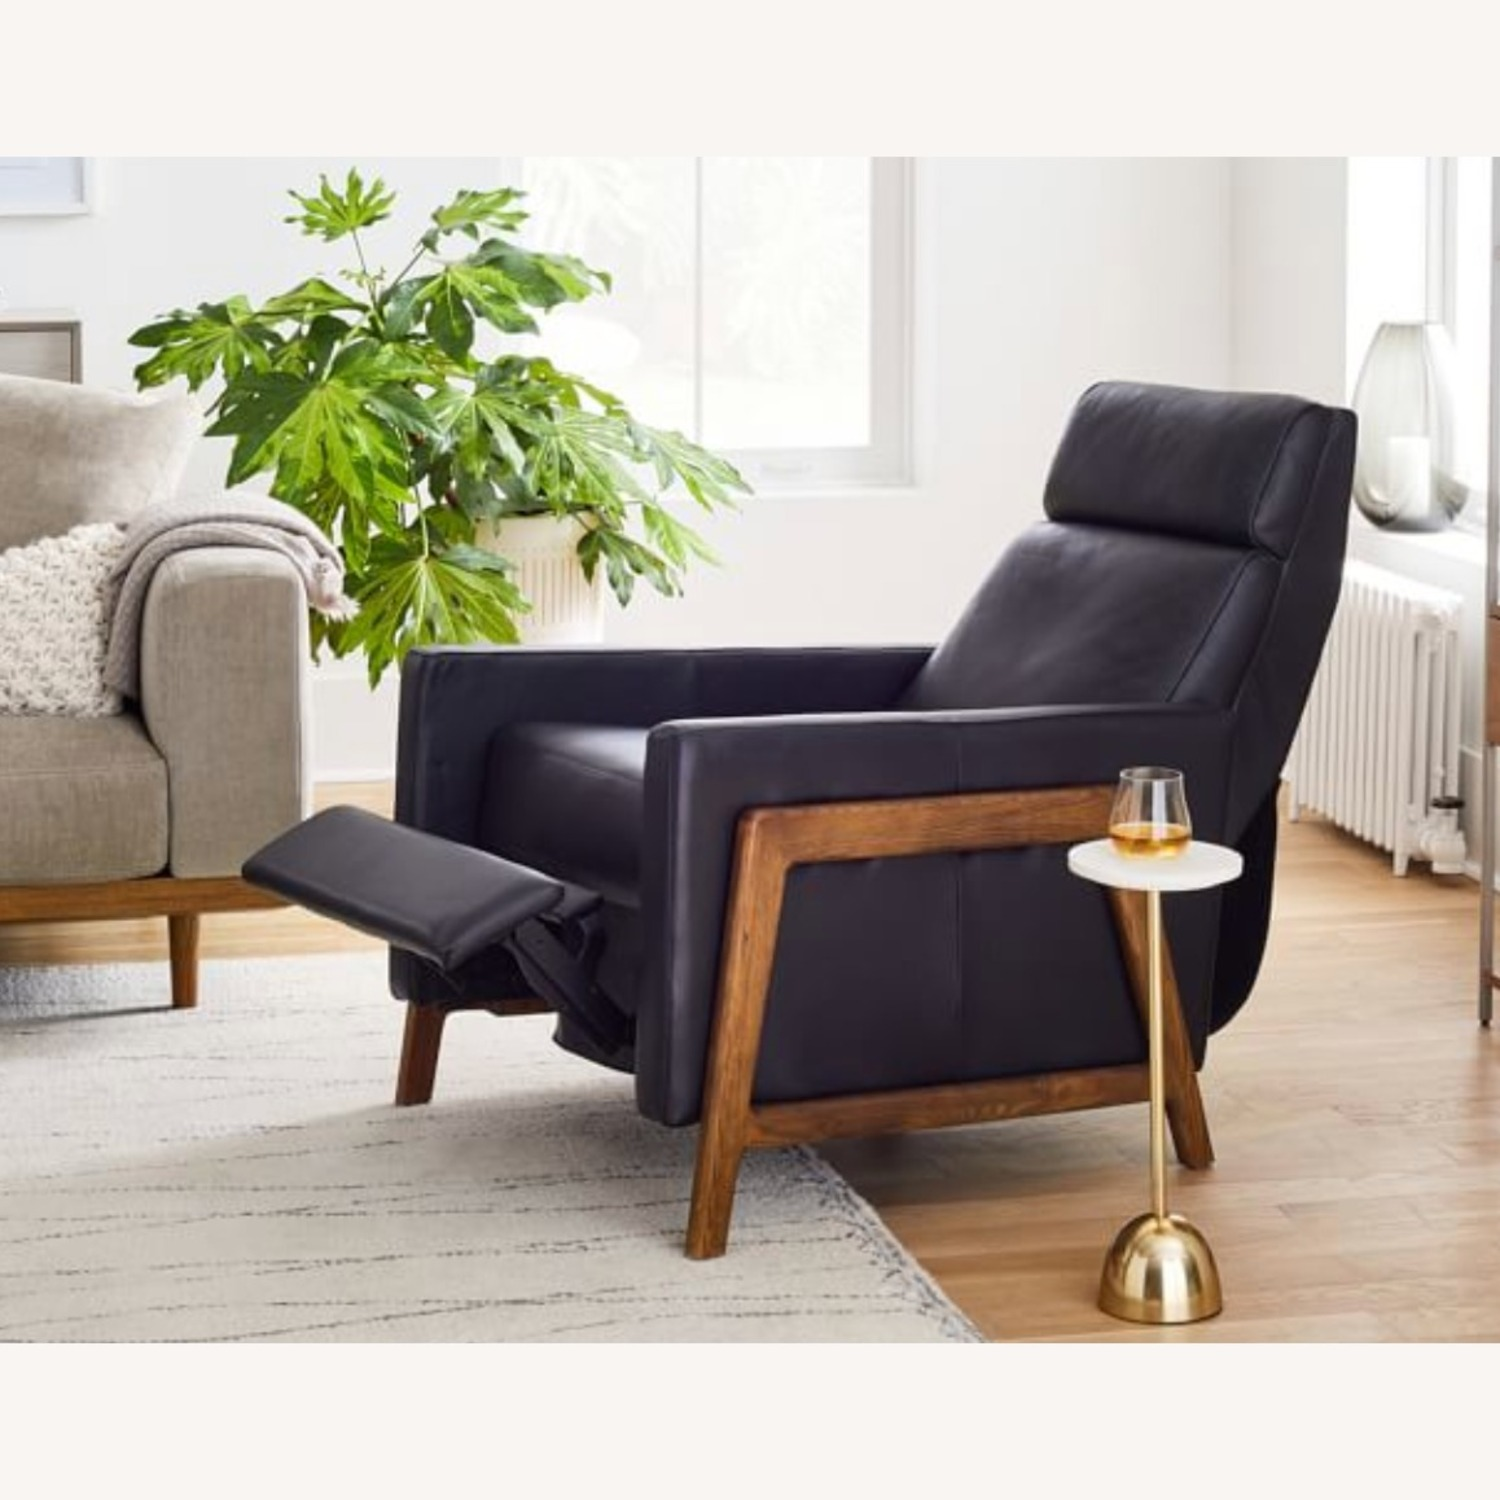 West Elm Black Leather Recliner Chair - image-3